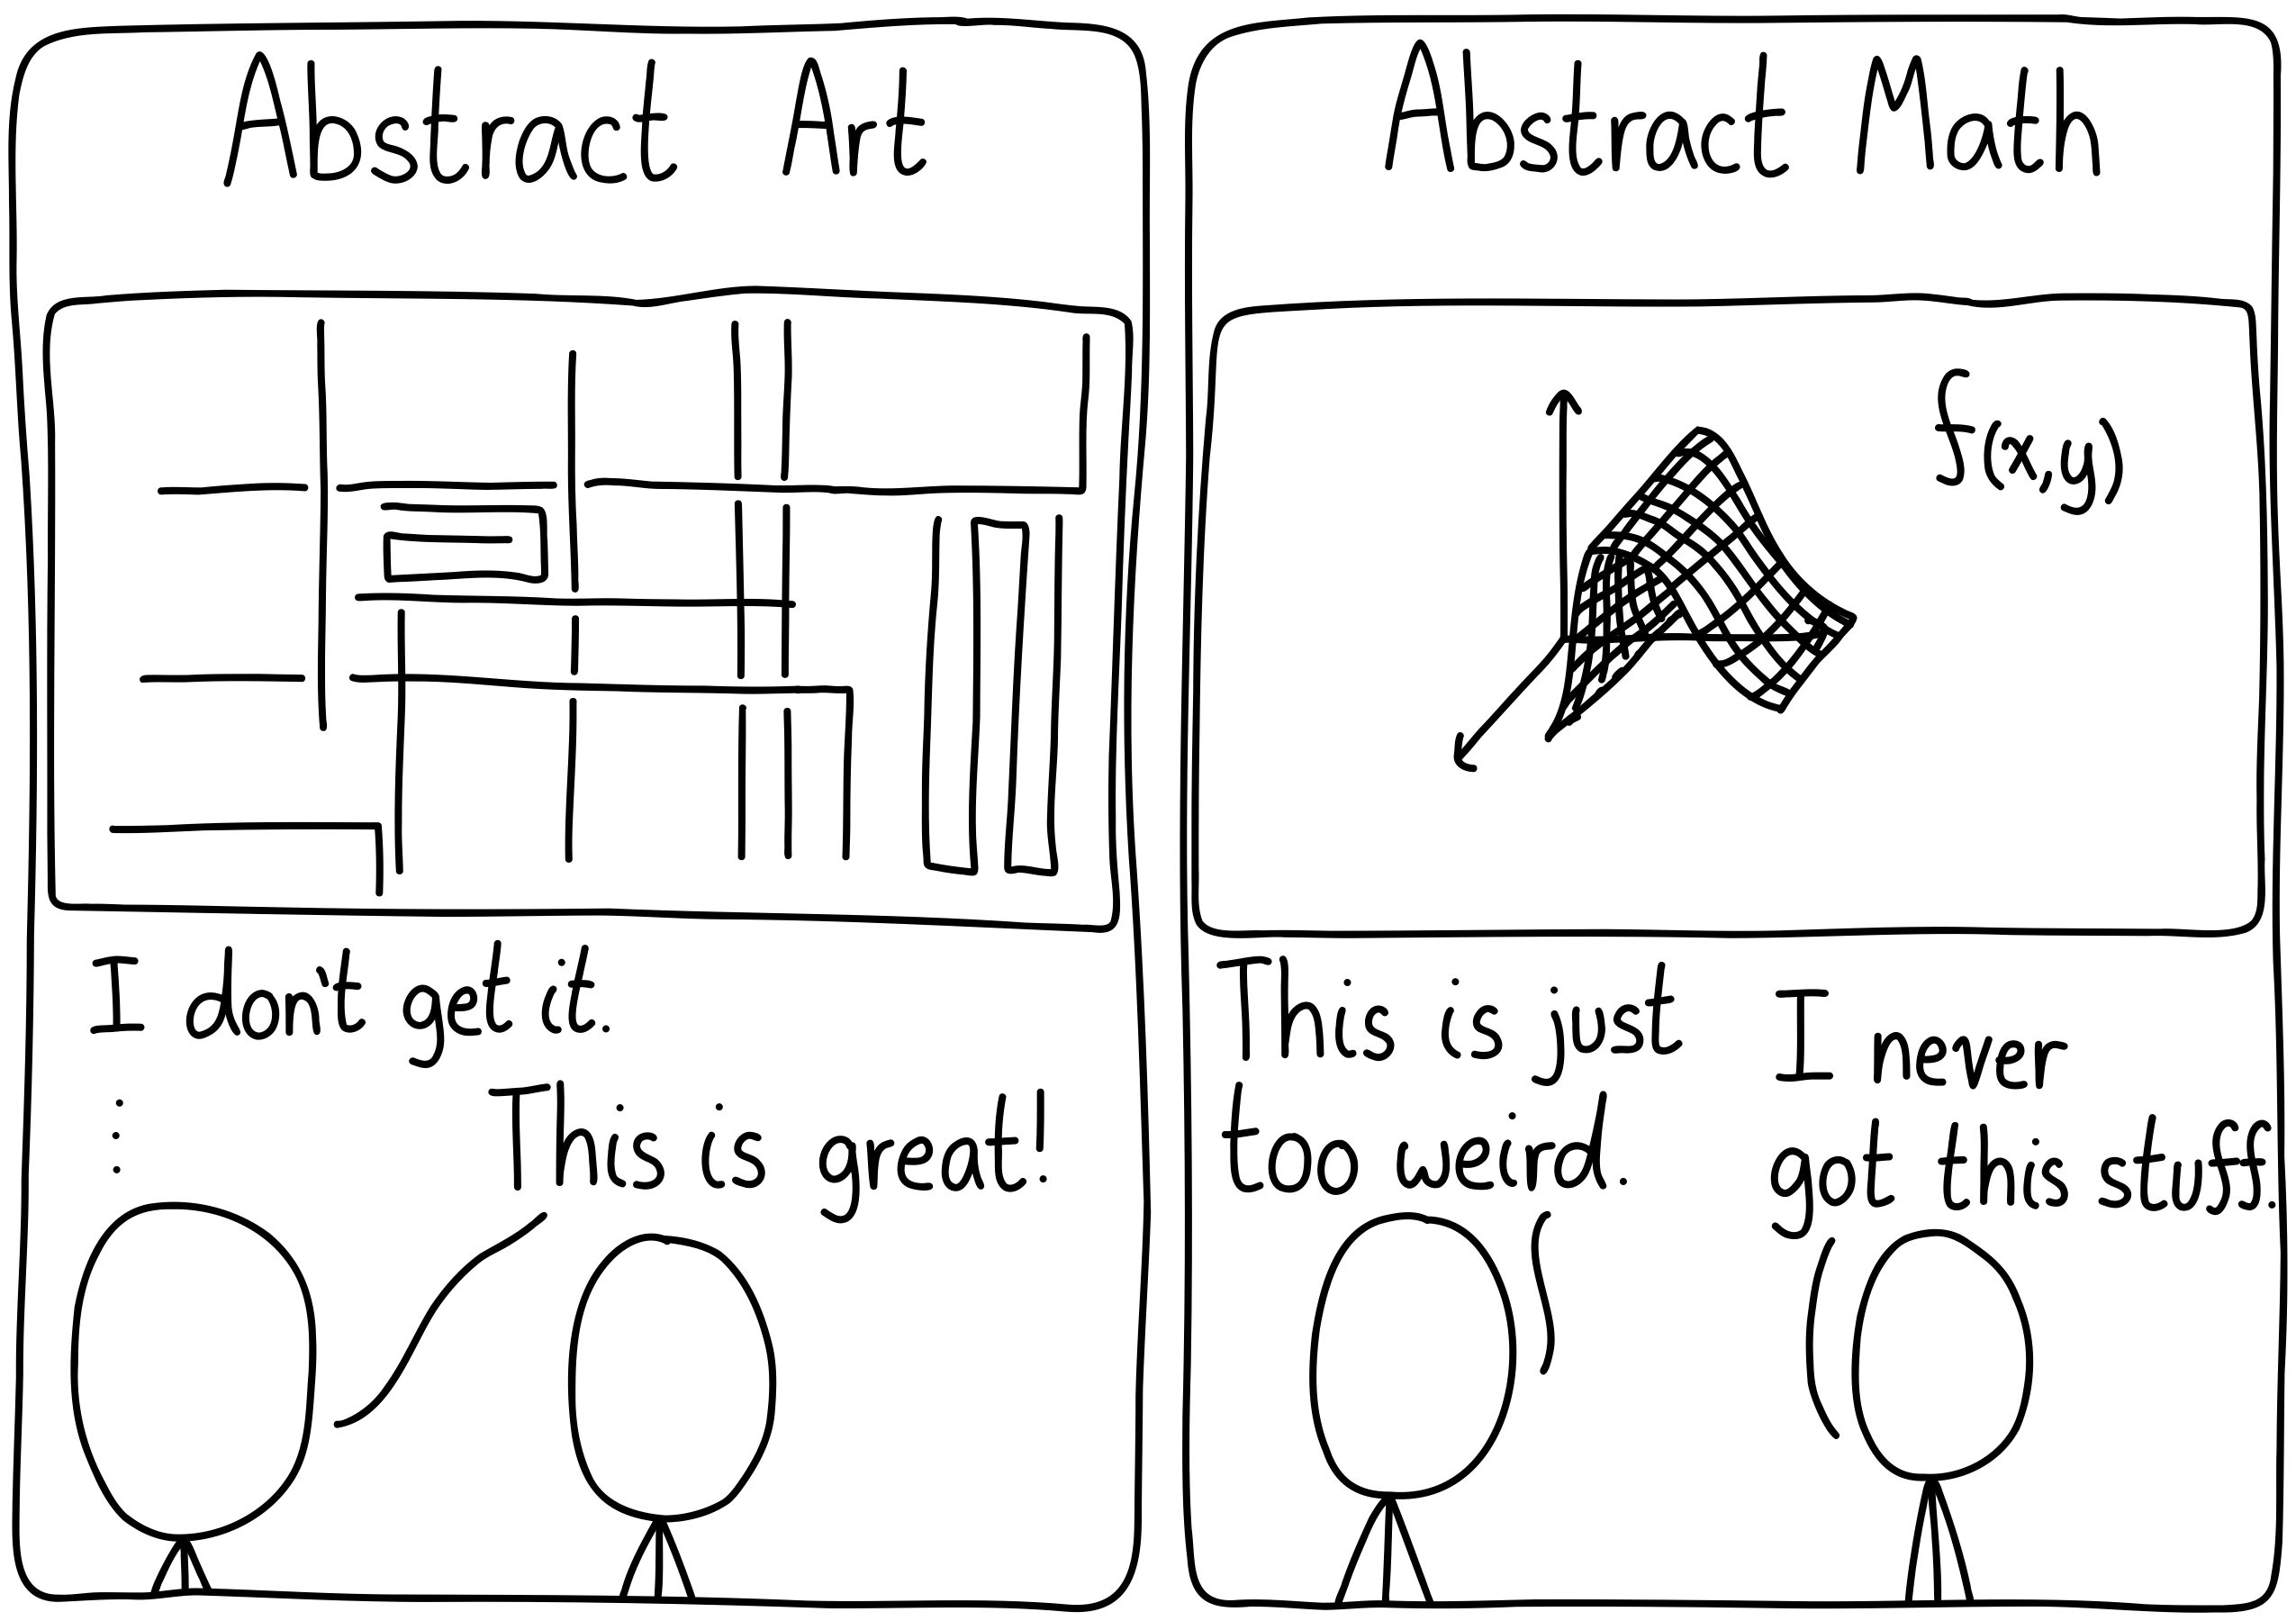 """Left panel (Abstract art): A painting with a lot of lines at right angles. Two people look at it. Person 1: (Thinking: I don't get it.) """"This is great!"""". Right panel (Abstract math): Two people look at a display of a function. Person 1: """"This is just too weird."""" Person 2: """"I never got this stuff."""""""